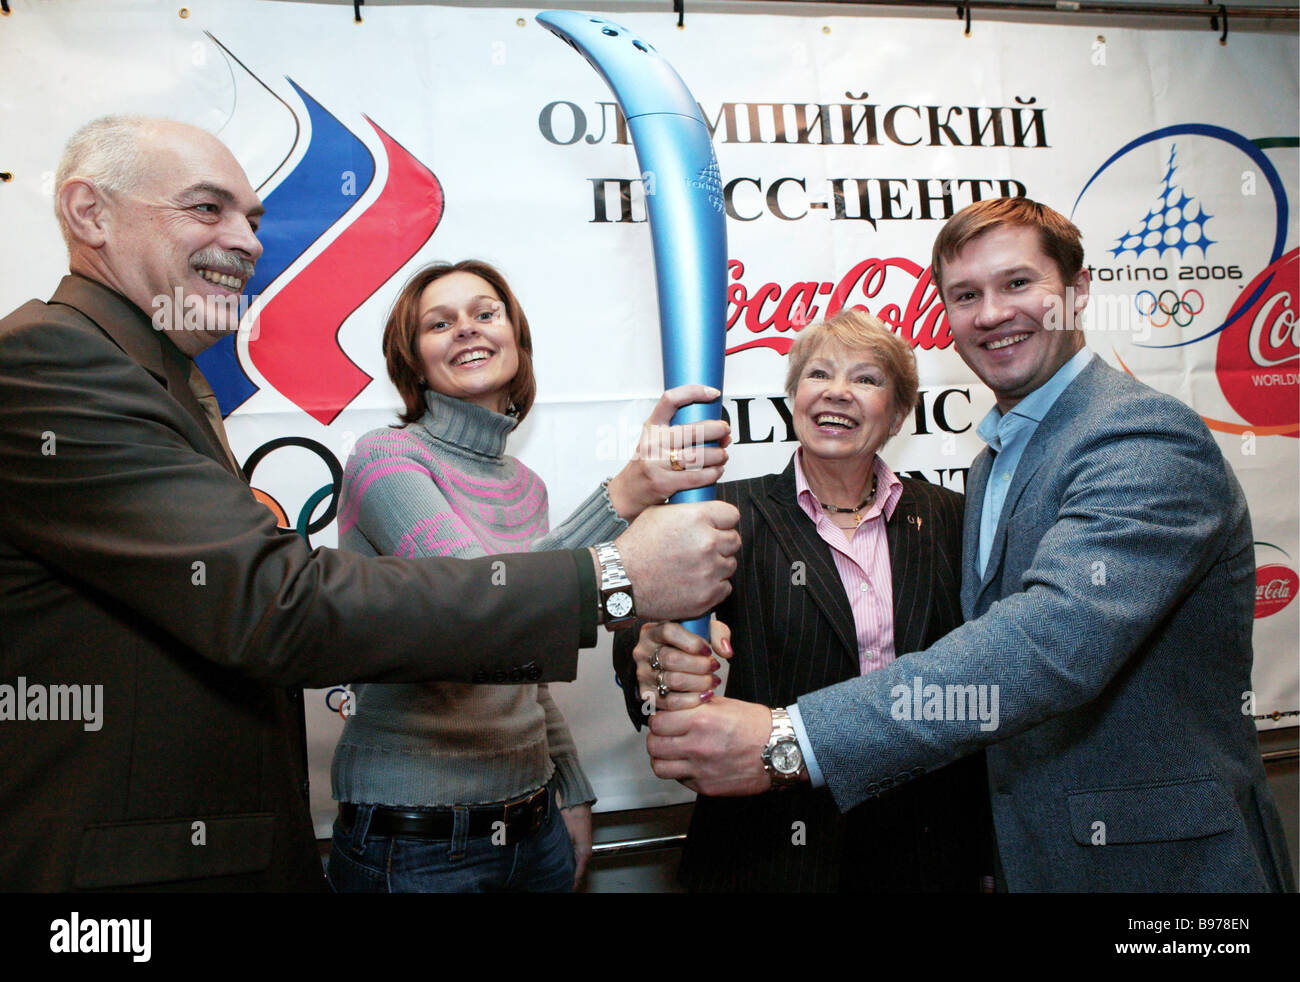 Russian participants of the Torino 2006 Olympic Flame relay Lev Rossoshik Olga Vasyukova Larisa Latynina and Alexei - Stock Image